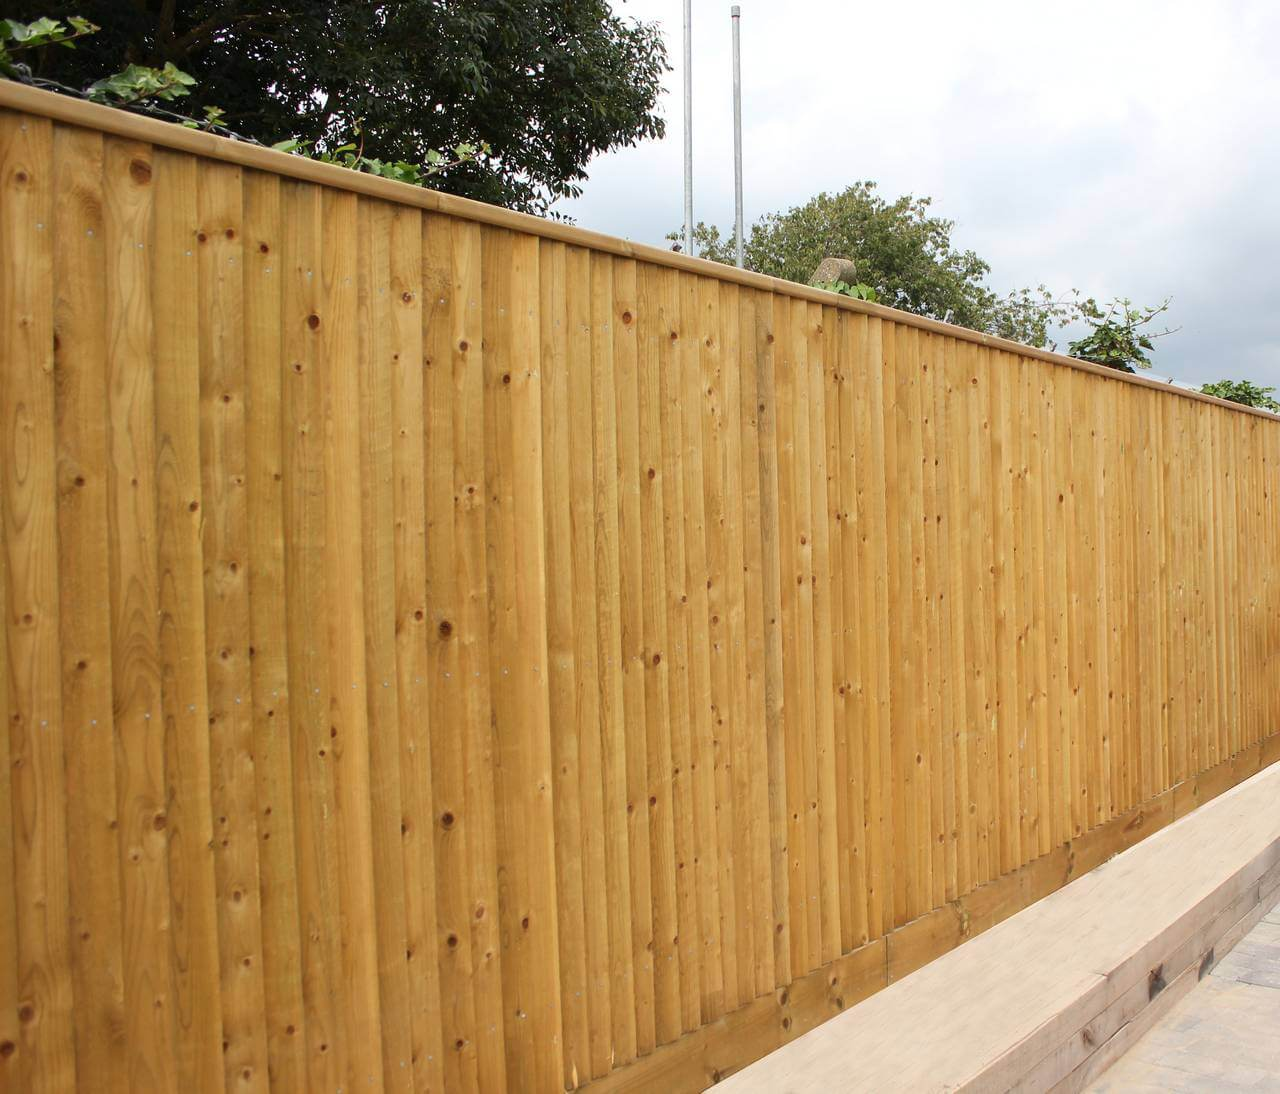 Traditional kit form fencing on business estate